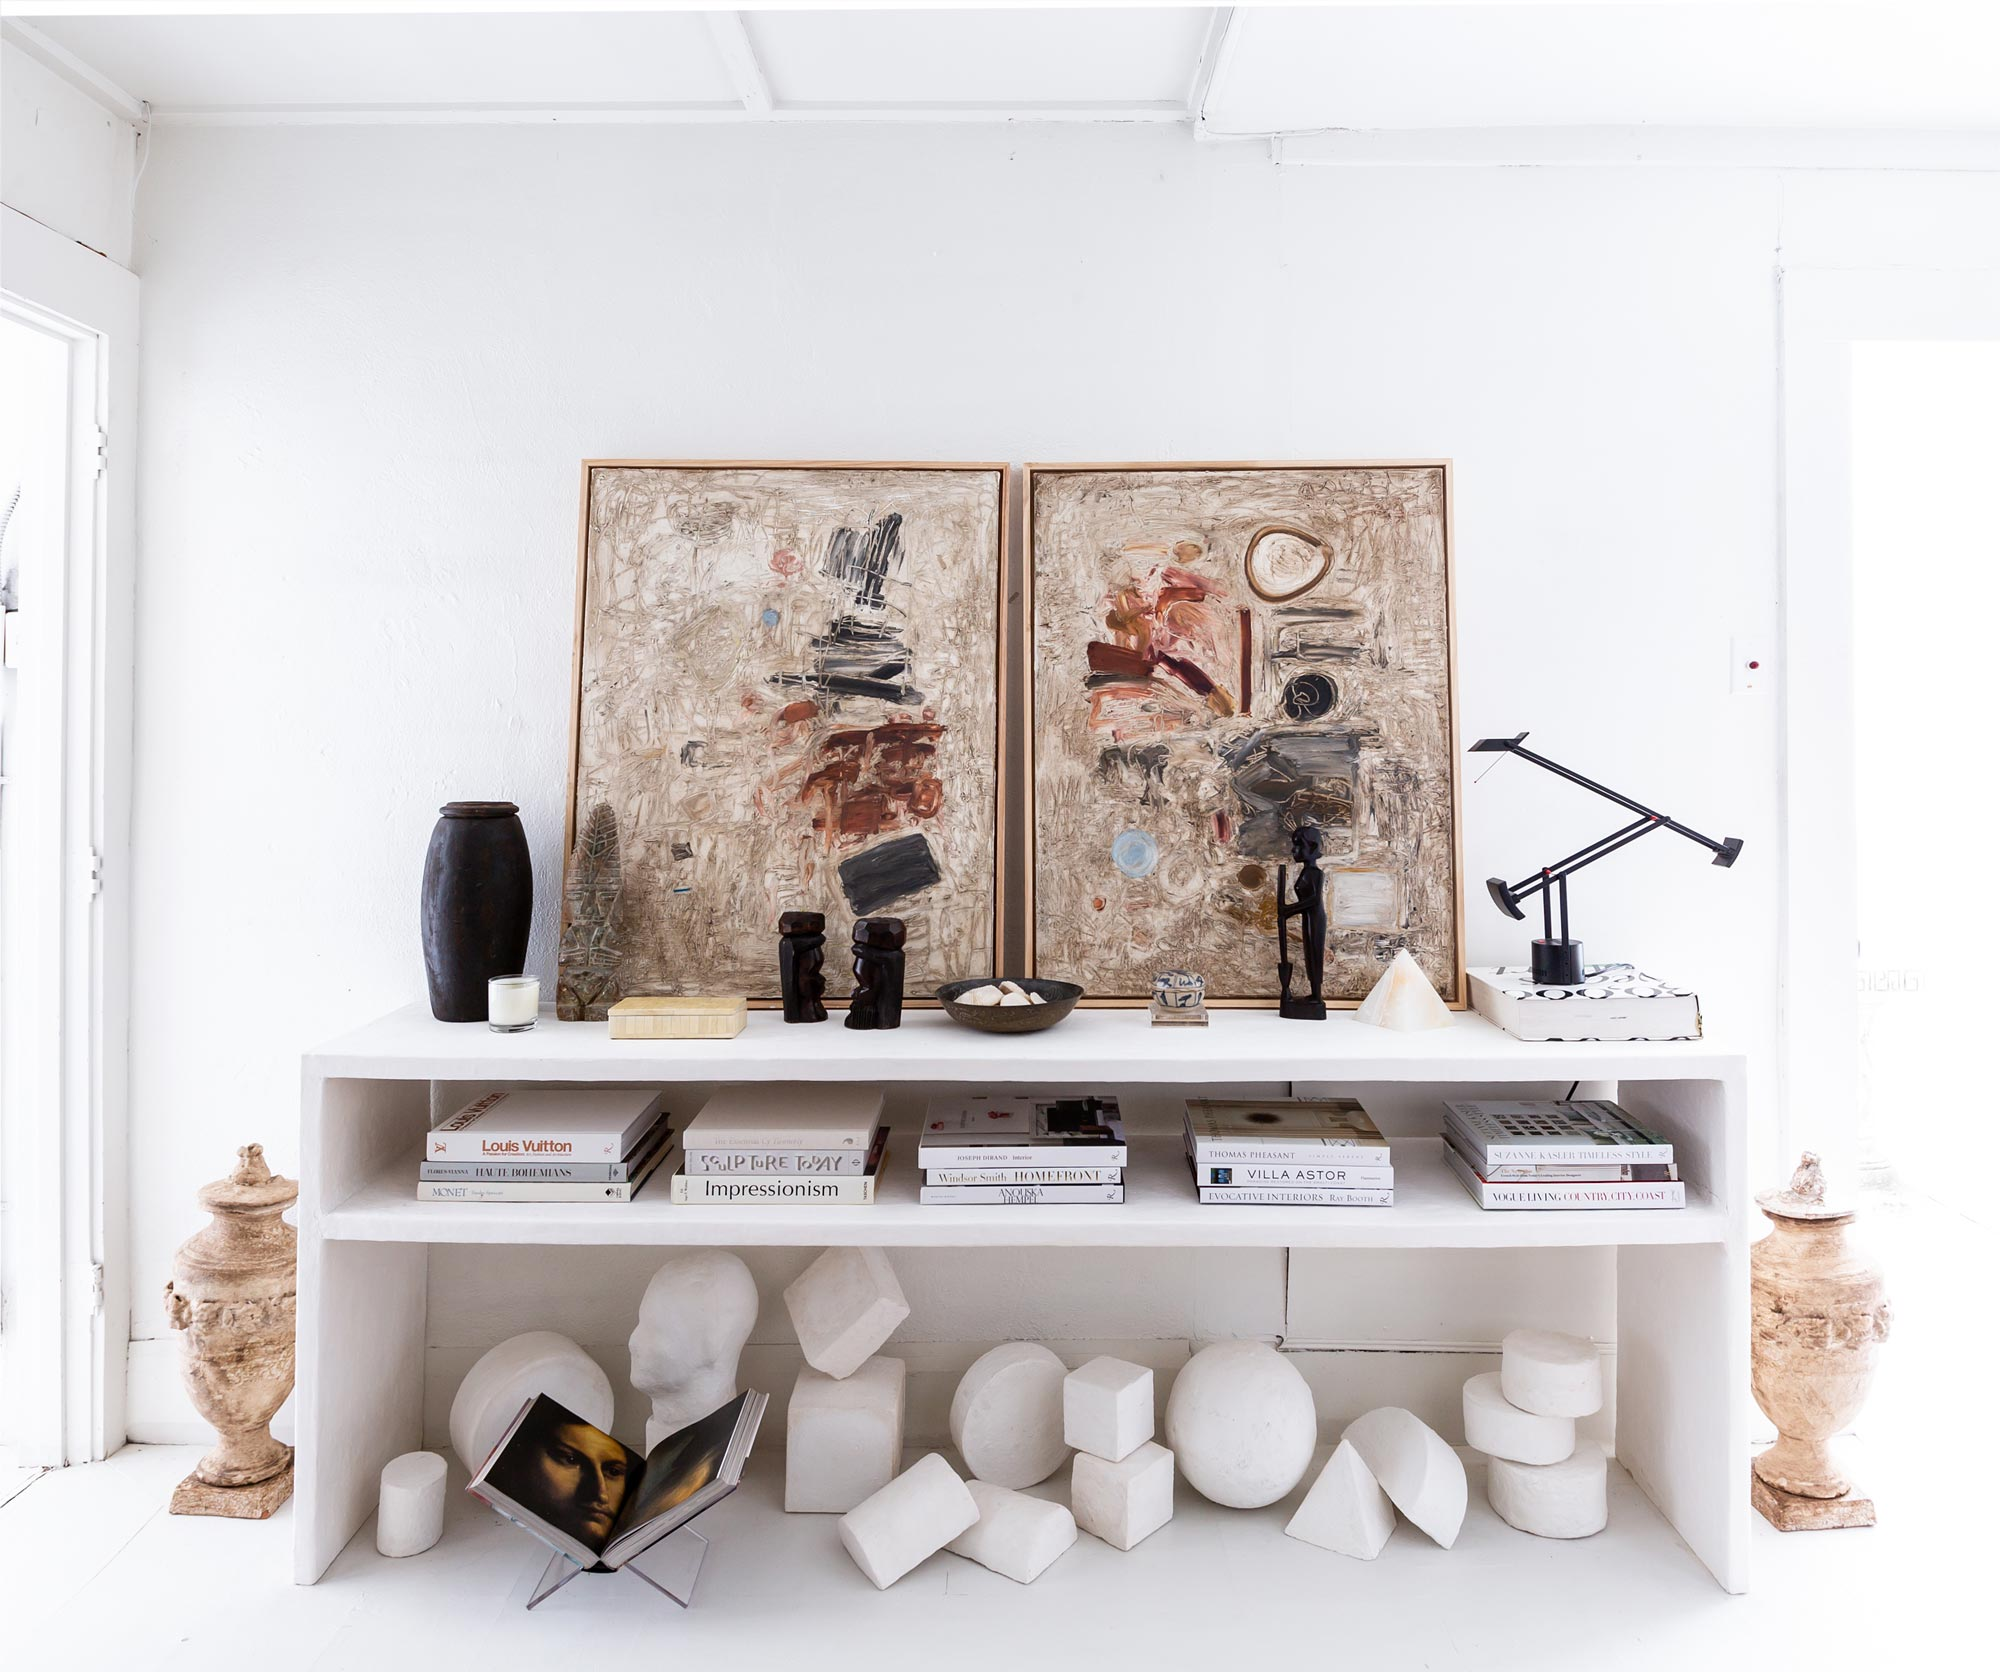 """Since moving into the studio, Dove has finally been able to regularly explore plaster as a medium for her artwork. She has made tables, small-scale geometric sculptures, and semi-figurative busts—even wall-mounted pieces that use plaster shards as their primary material. """"I've always played with plaster, but it's so dusty and messy that you can't really do it in your house,"""" she says. """"You have to really commit to the dust mask and everything."""""""